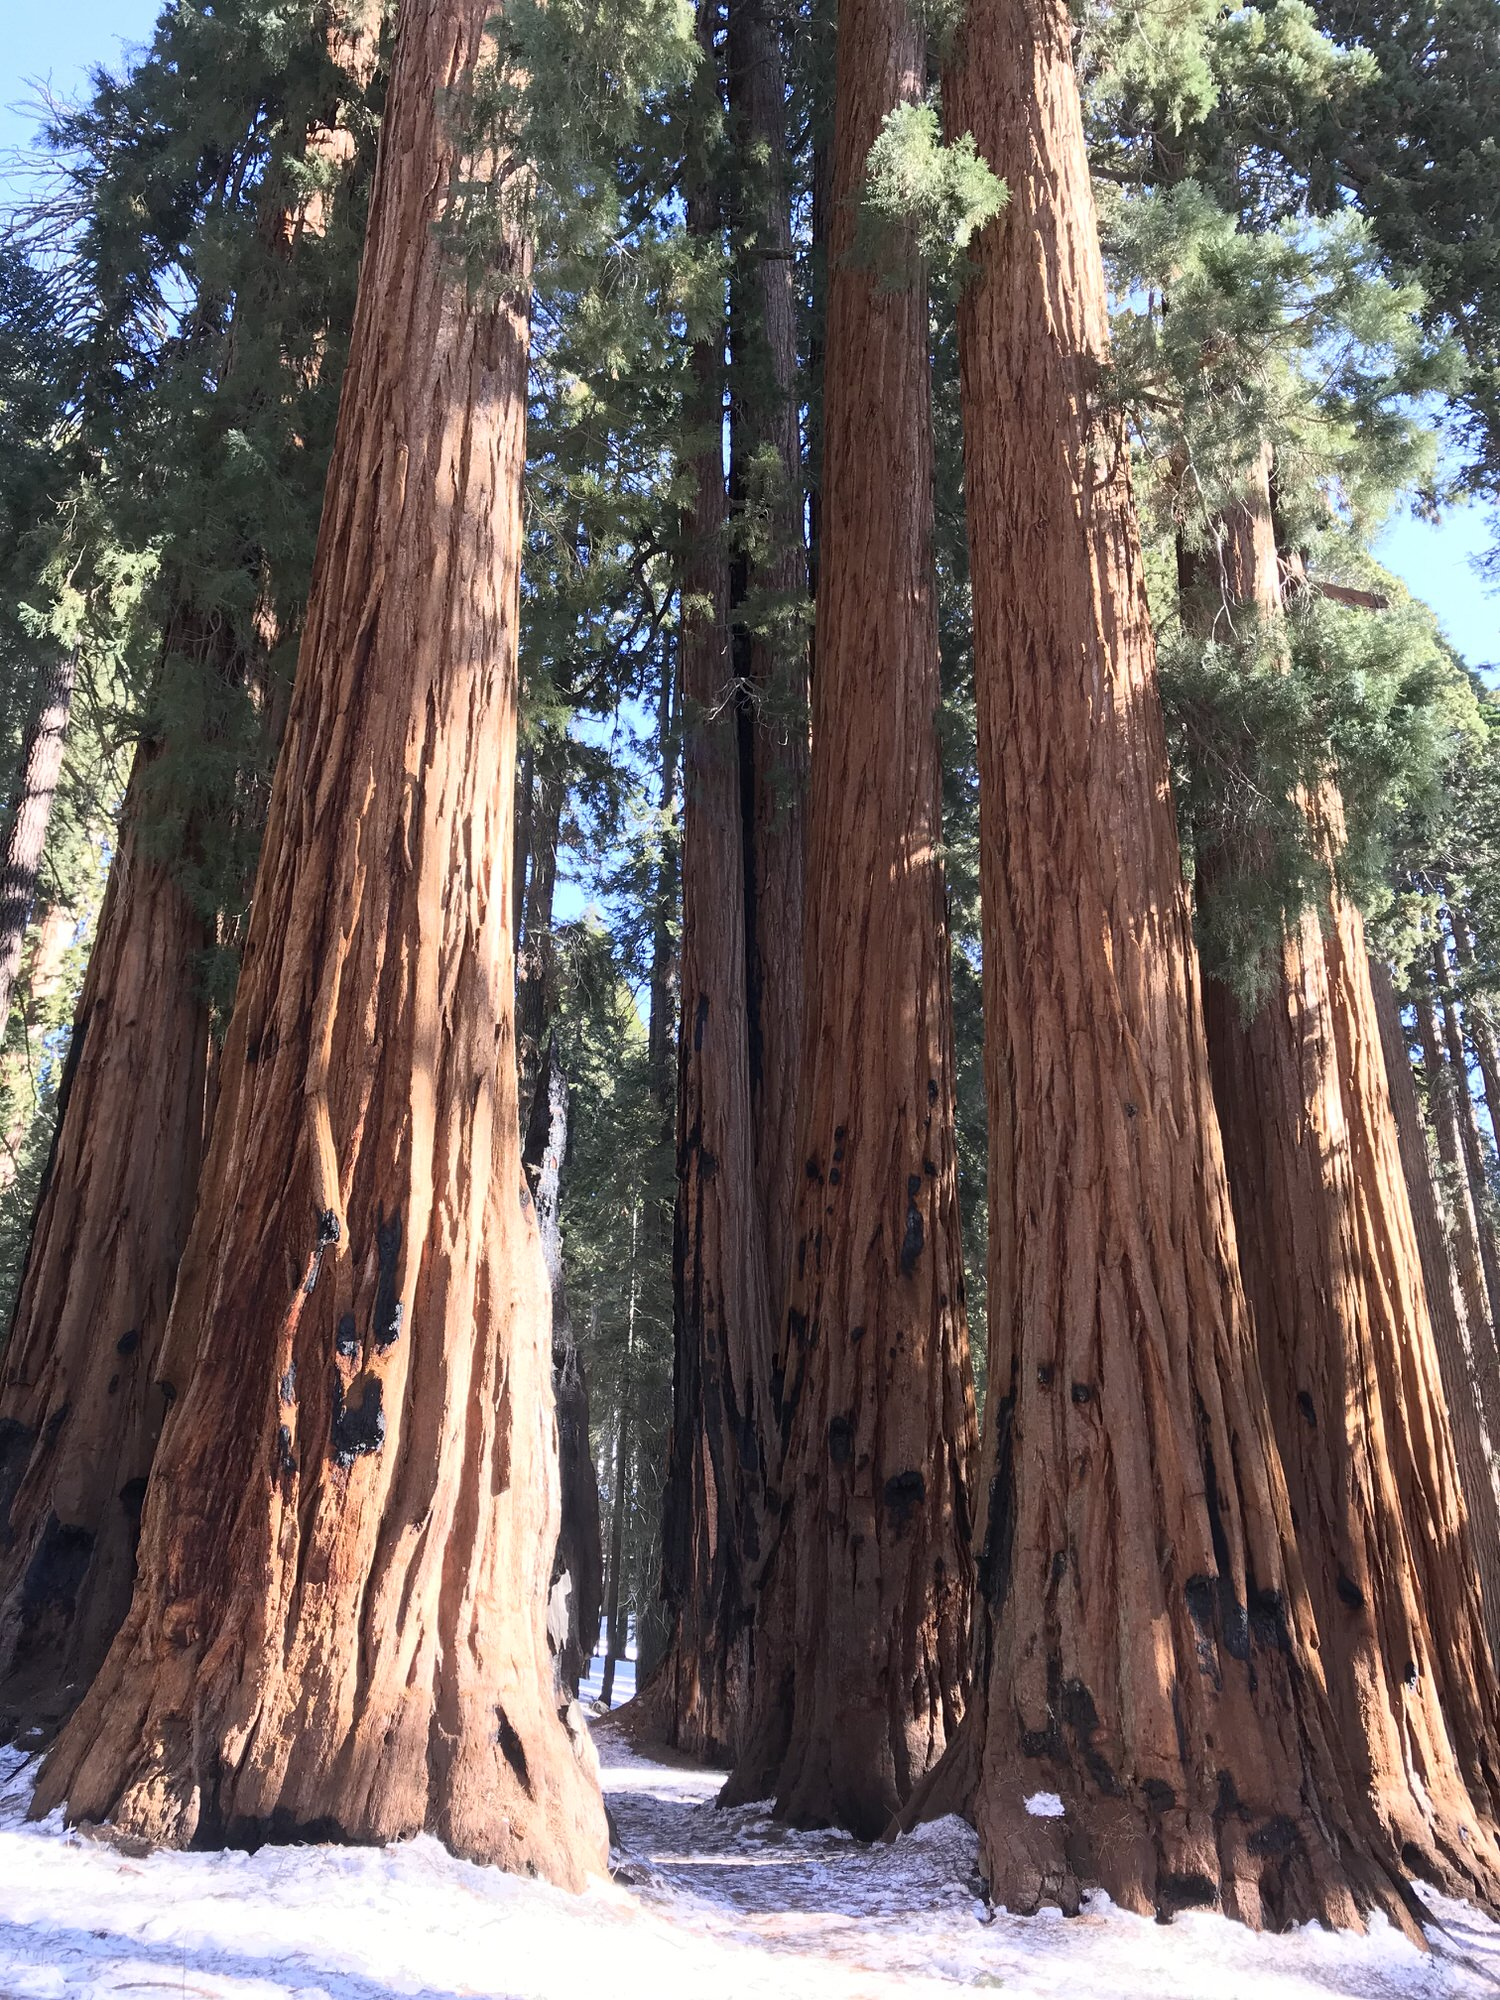 photo: Groves of Sequoias along the trail. Photo by Pam Riches.